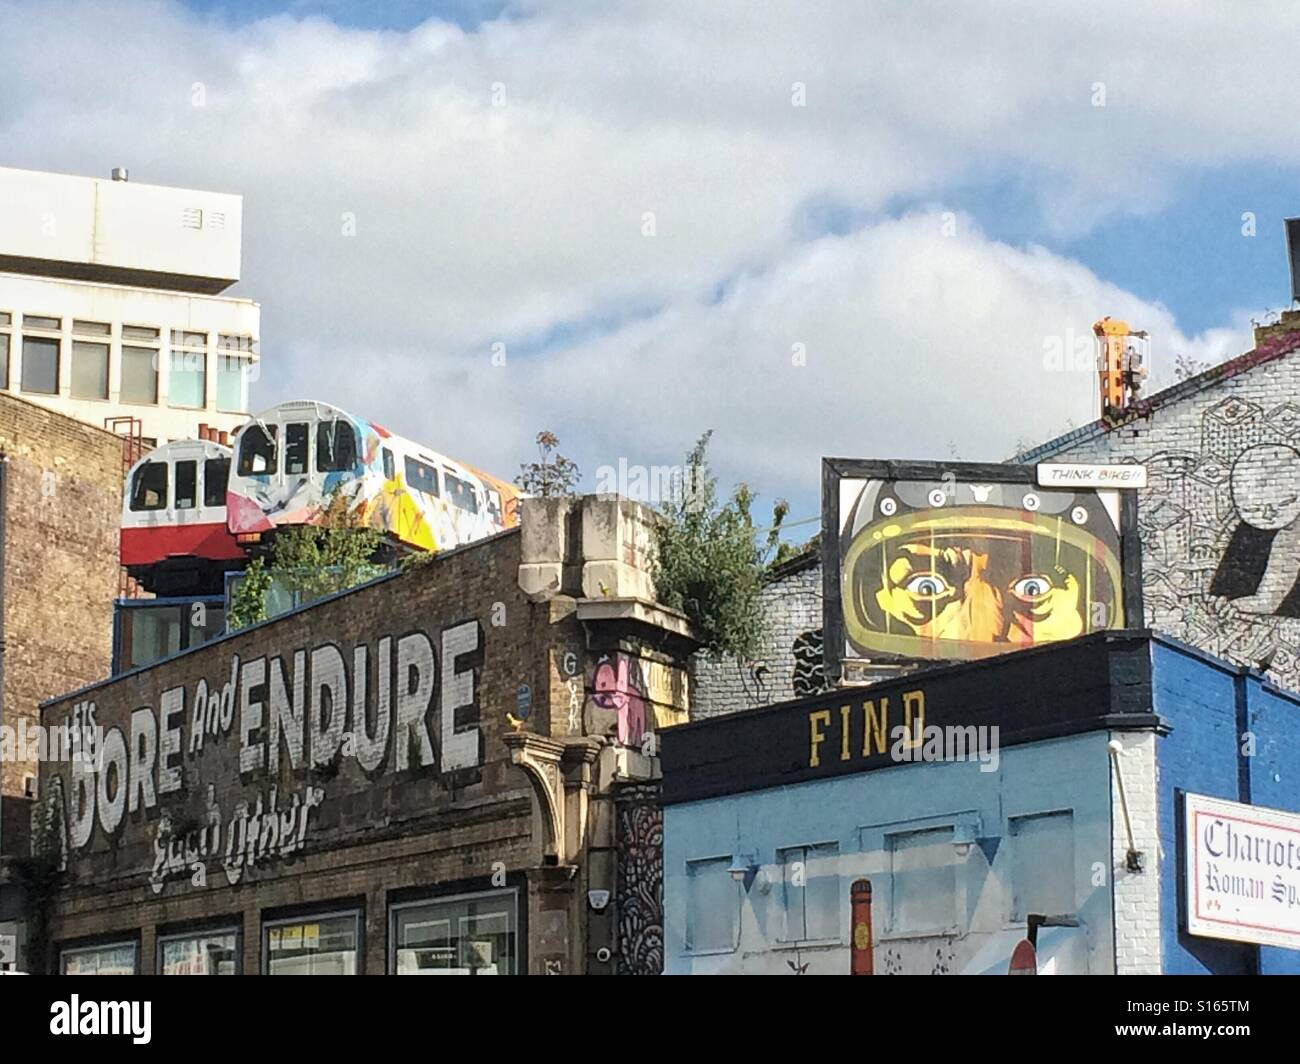 London Underground trains on a roof in East London - Stock Image